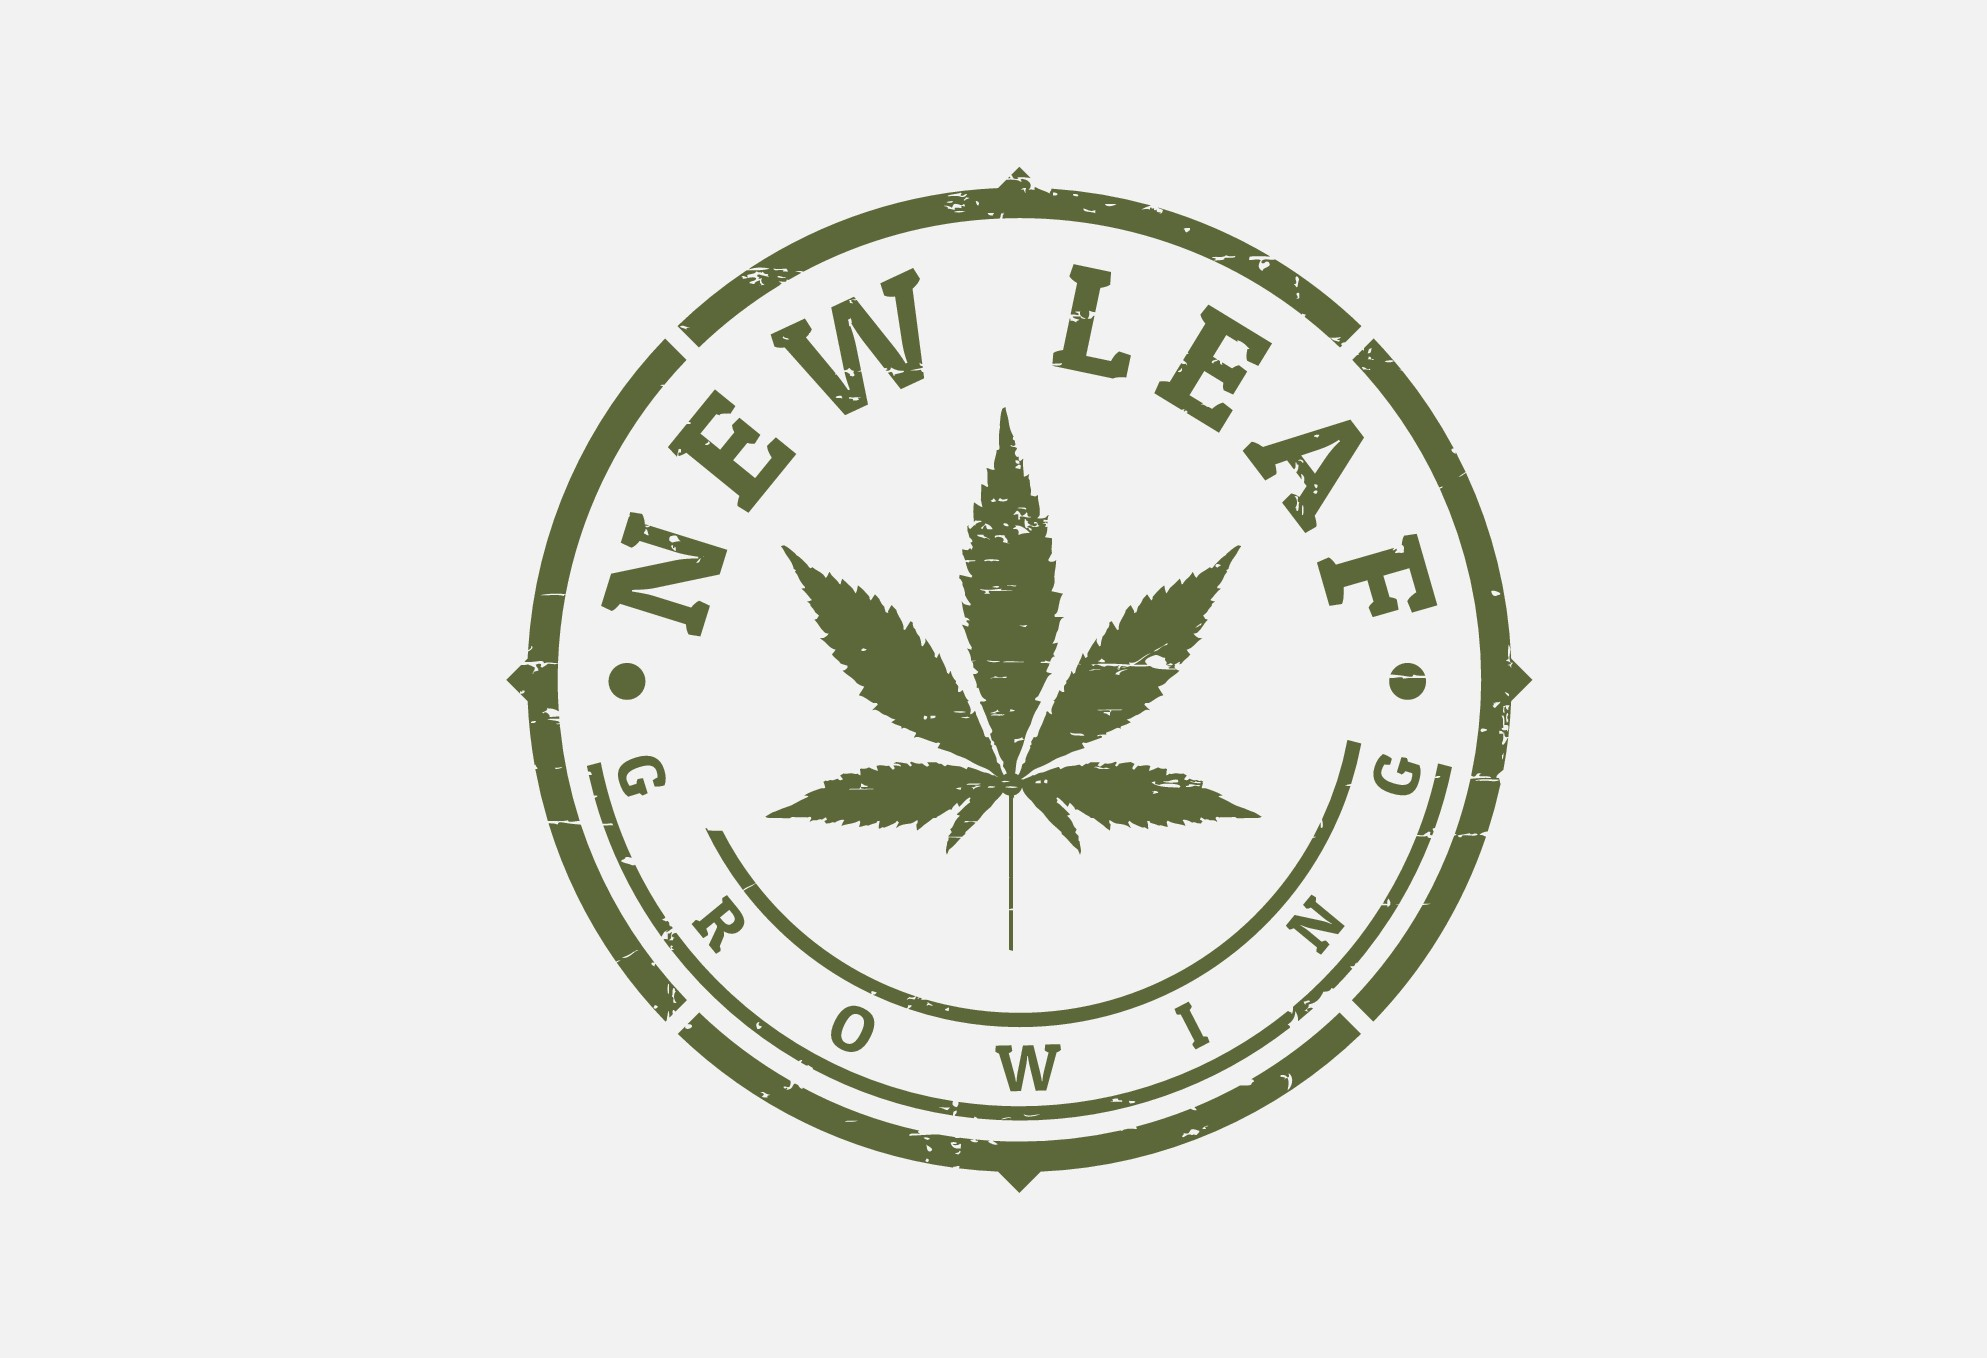 """New Leaf Growing"" needs a logo that is clean, simple to reproduce and memorable. We need your help!"